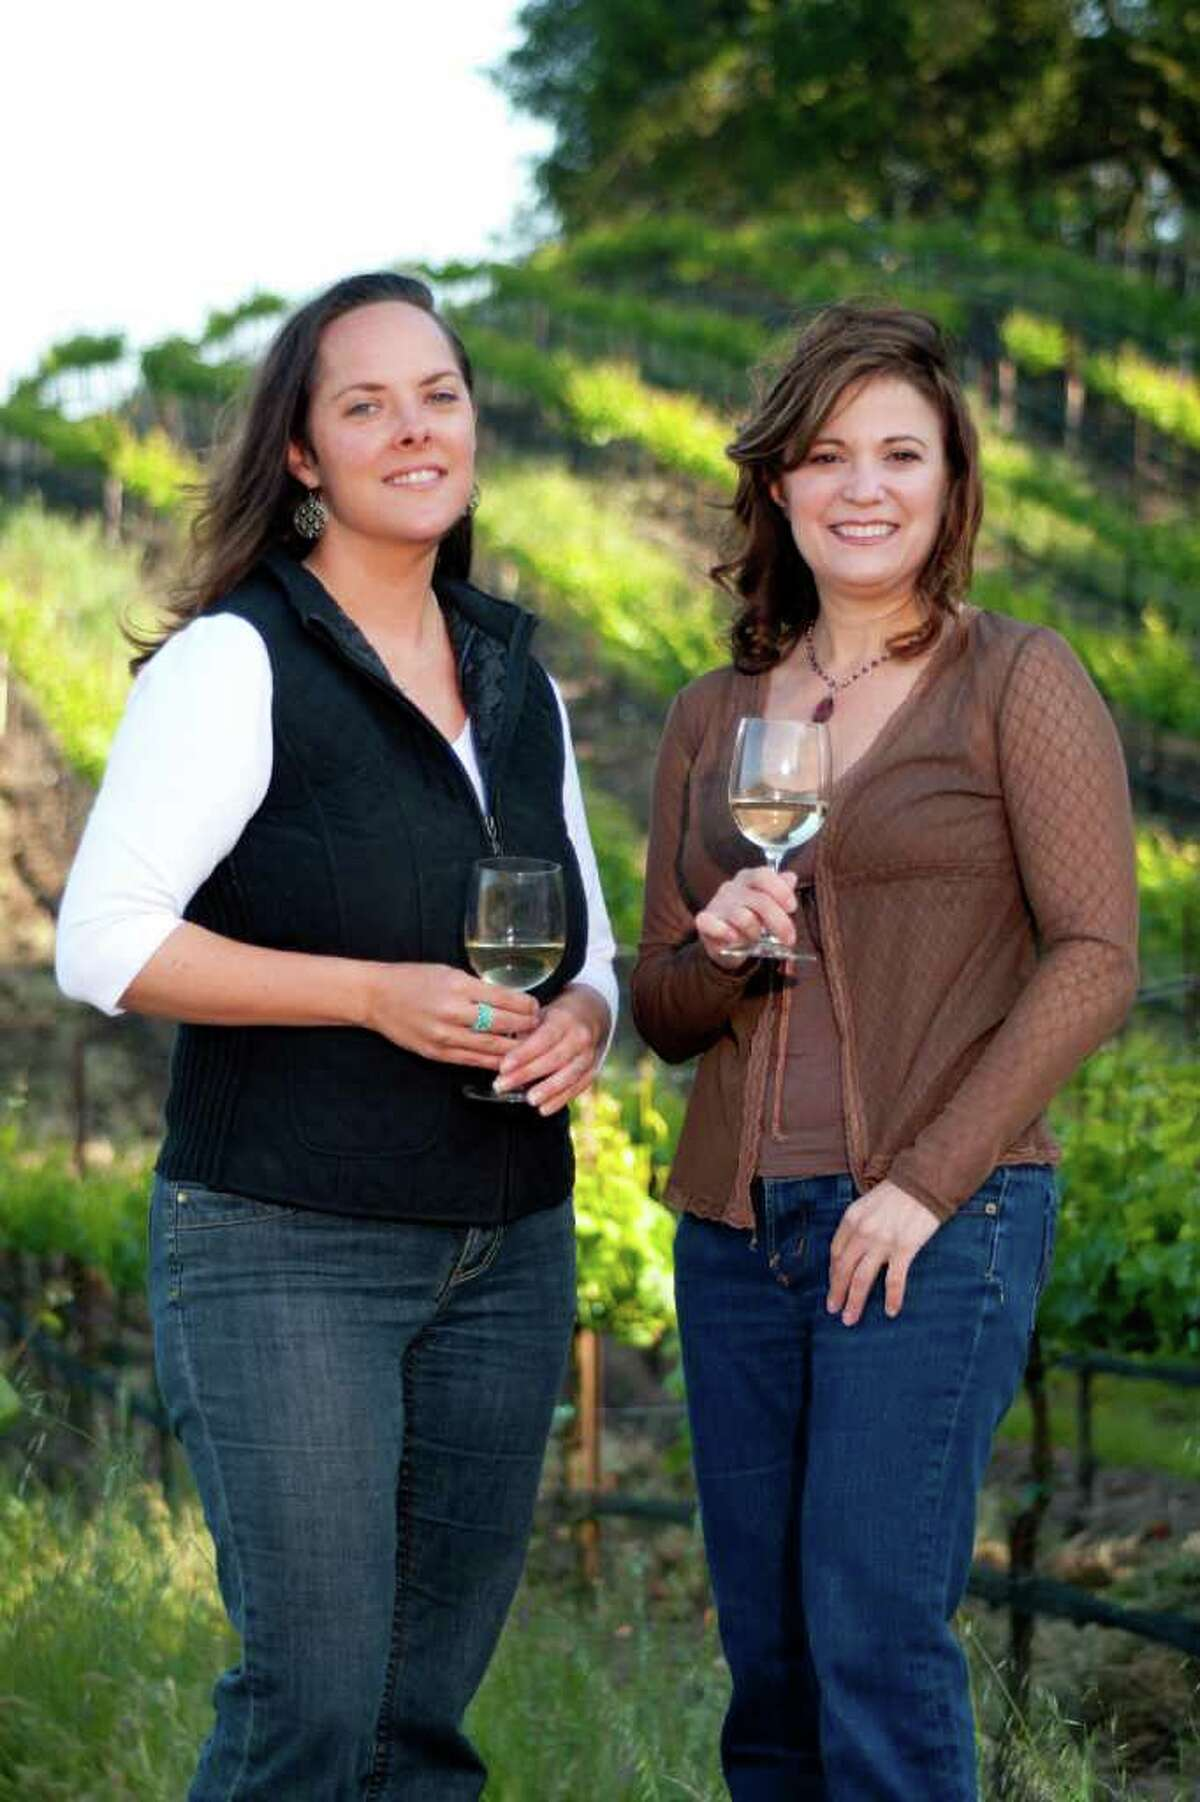 Deborah Brenner (right) who runs the Women of the Vine wine company tastes a new vintage from Sonoma County grower and wine maker Alison Crowe.